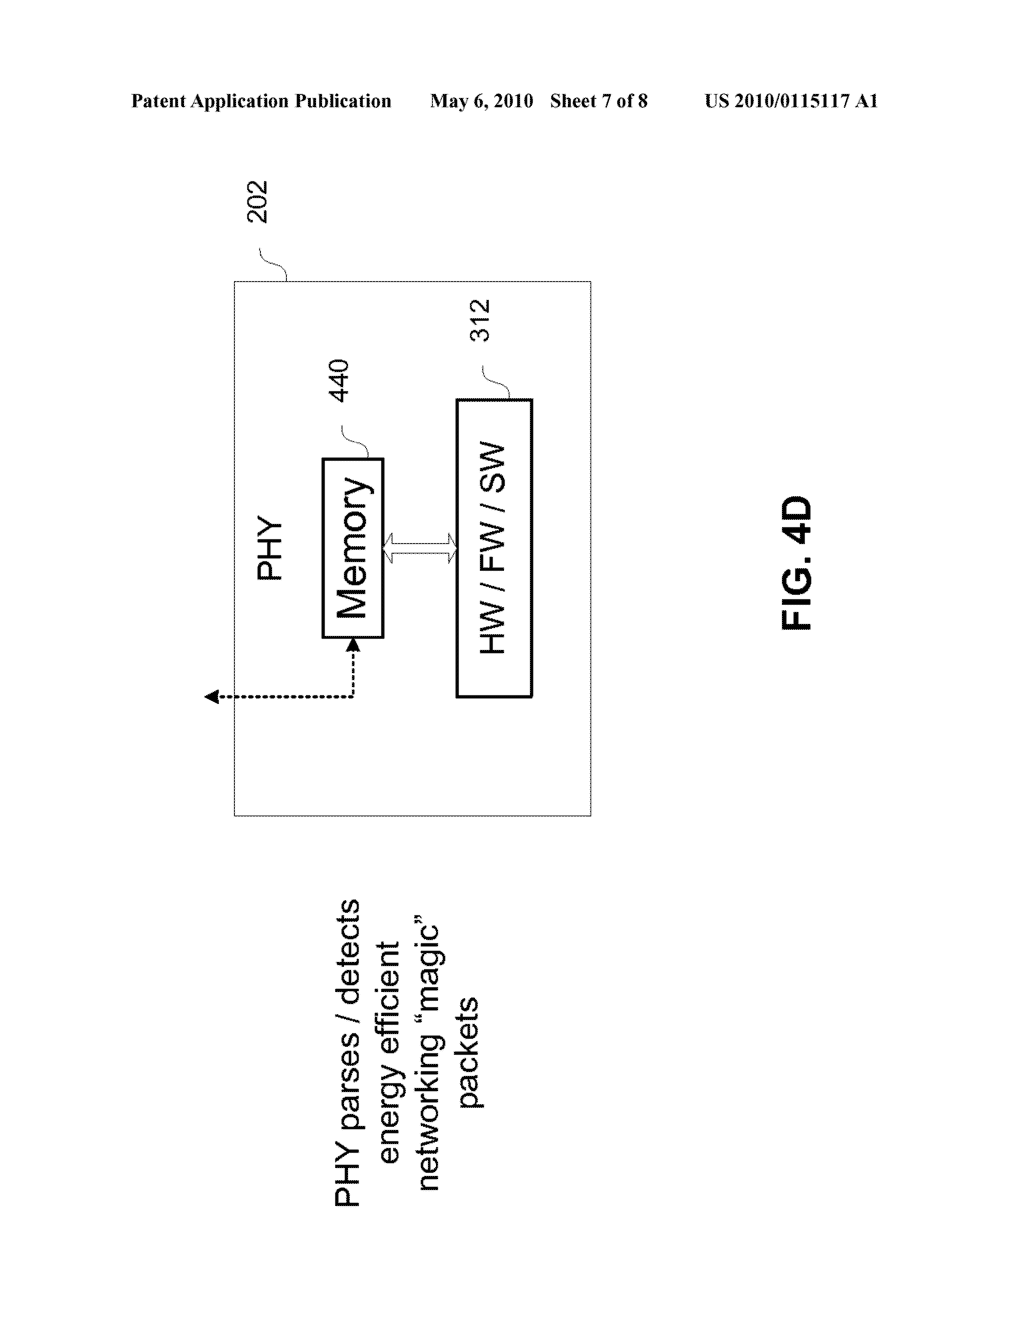 Method And System For Packet Based Signaling Between A MAC And A PHY To Manage Energy Efficient Network Devices And/Or Protocols - diagram, schematic, and image 08